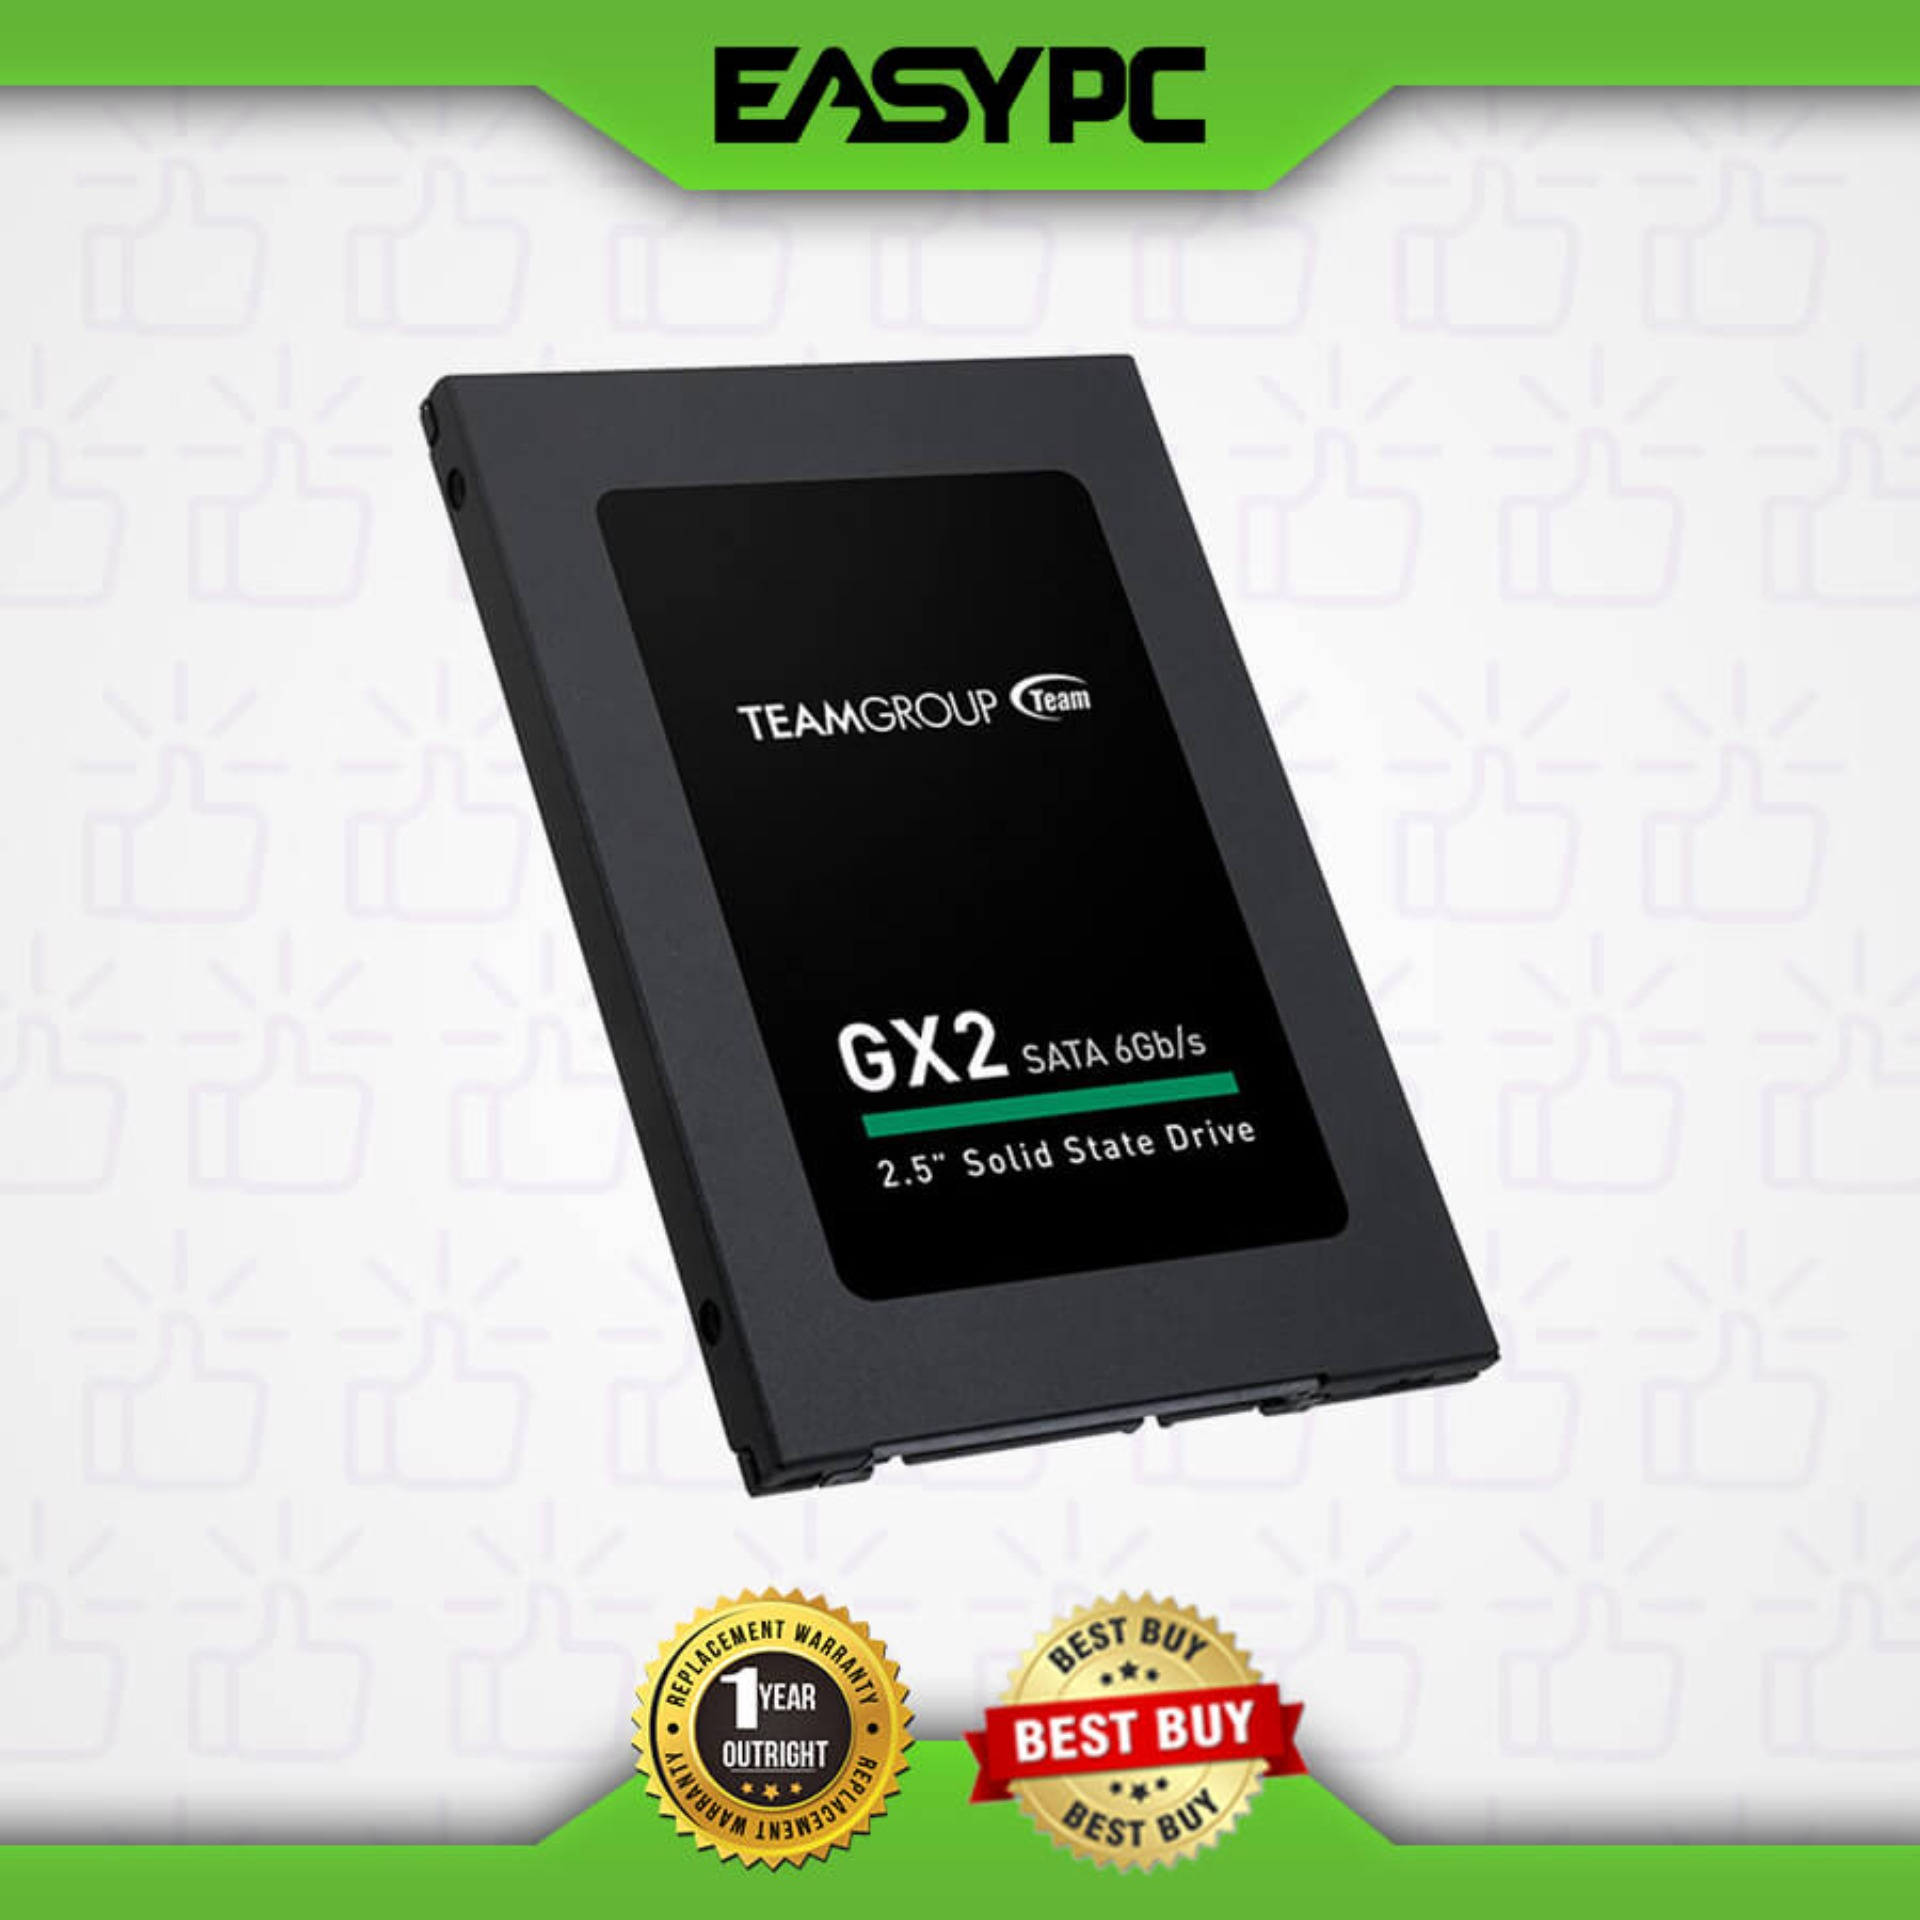 Team Elite GX2 512GB Sata III 2.5 Solid State Drive. Team Elite GX2 512GB 2.5 SSD Internal Storage Device for Laptop, Notebook and Desktop, for Faster Booting and File Transferring, Windows 10 Compatible , Light weight and Affordable SSD, Easy to Use